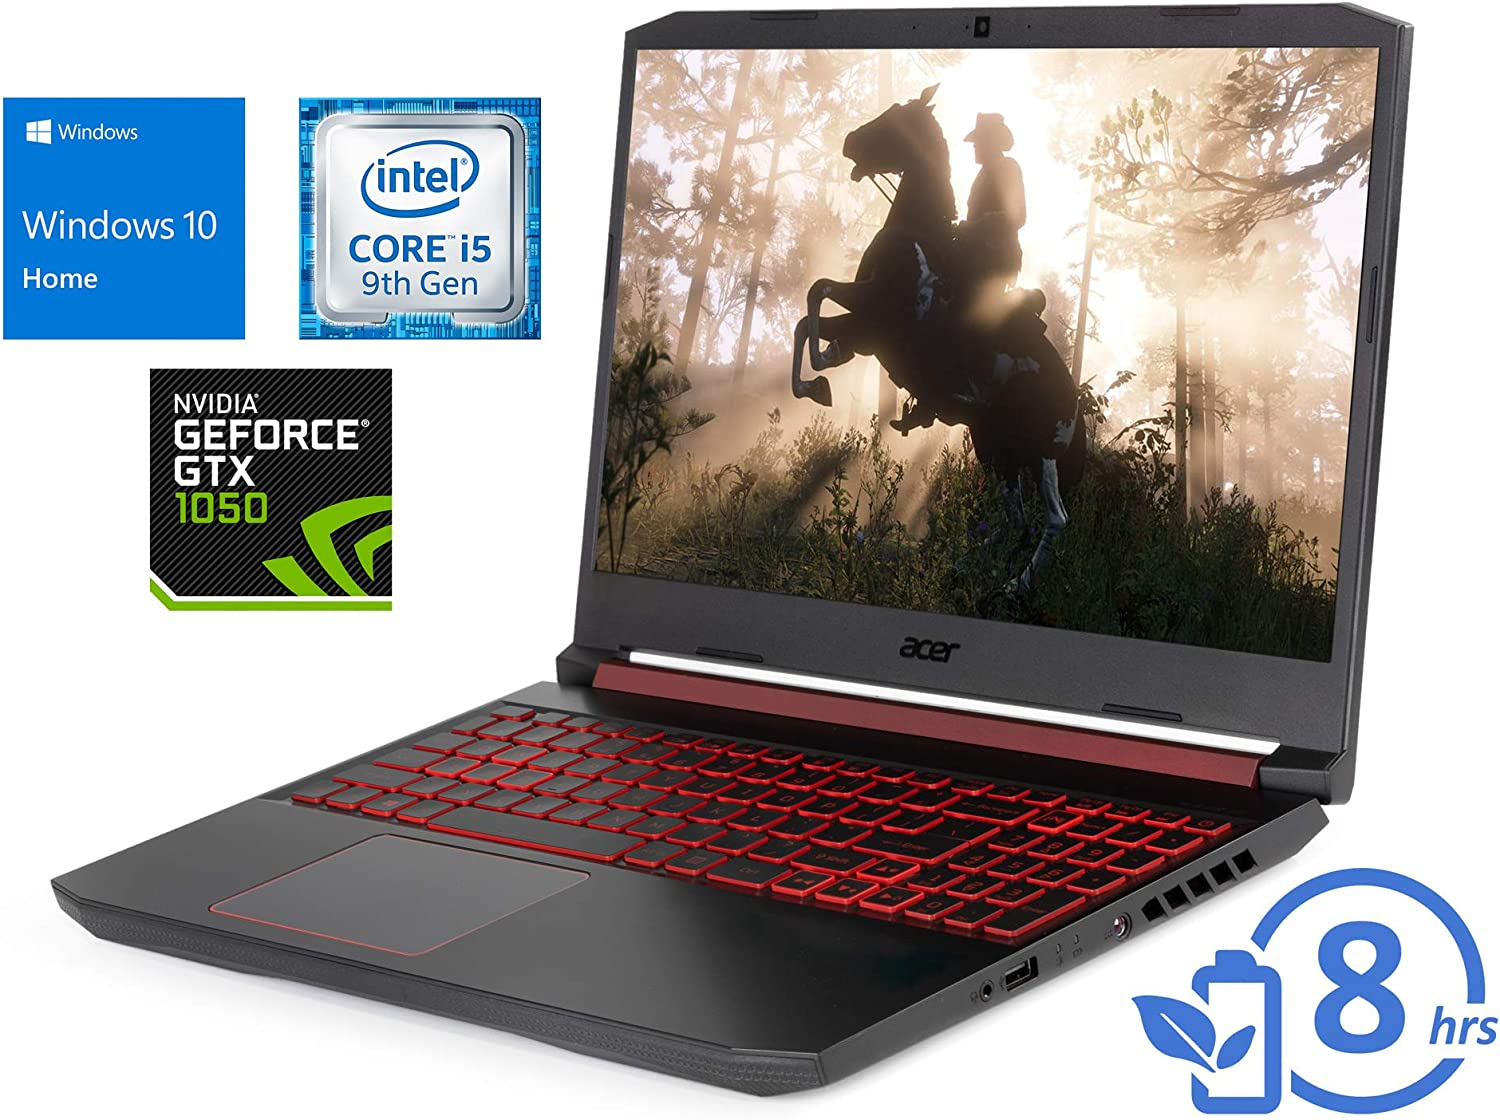 Amazon Com Acer Nitro 5 Nh Q5vaa 001 Laptop 15 6 Fhd Display Intel Core I5 9300h Upto 4 1ghz 8gb Ram 256gb Nvme Ssd Nvidia Geforce Gtx 1050 Hdmi Wi Fi Bluetooth Windows 10 Home Computers Accessories